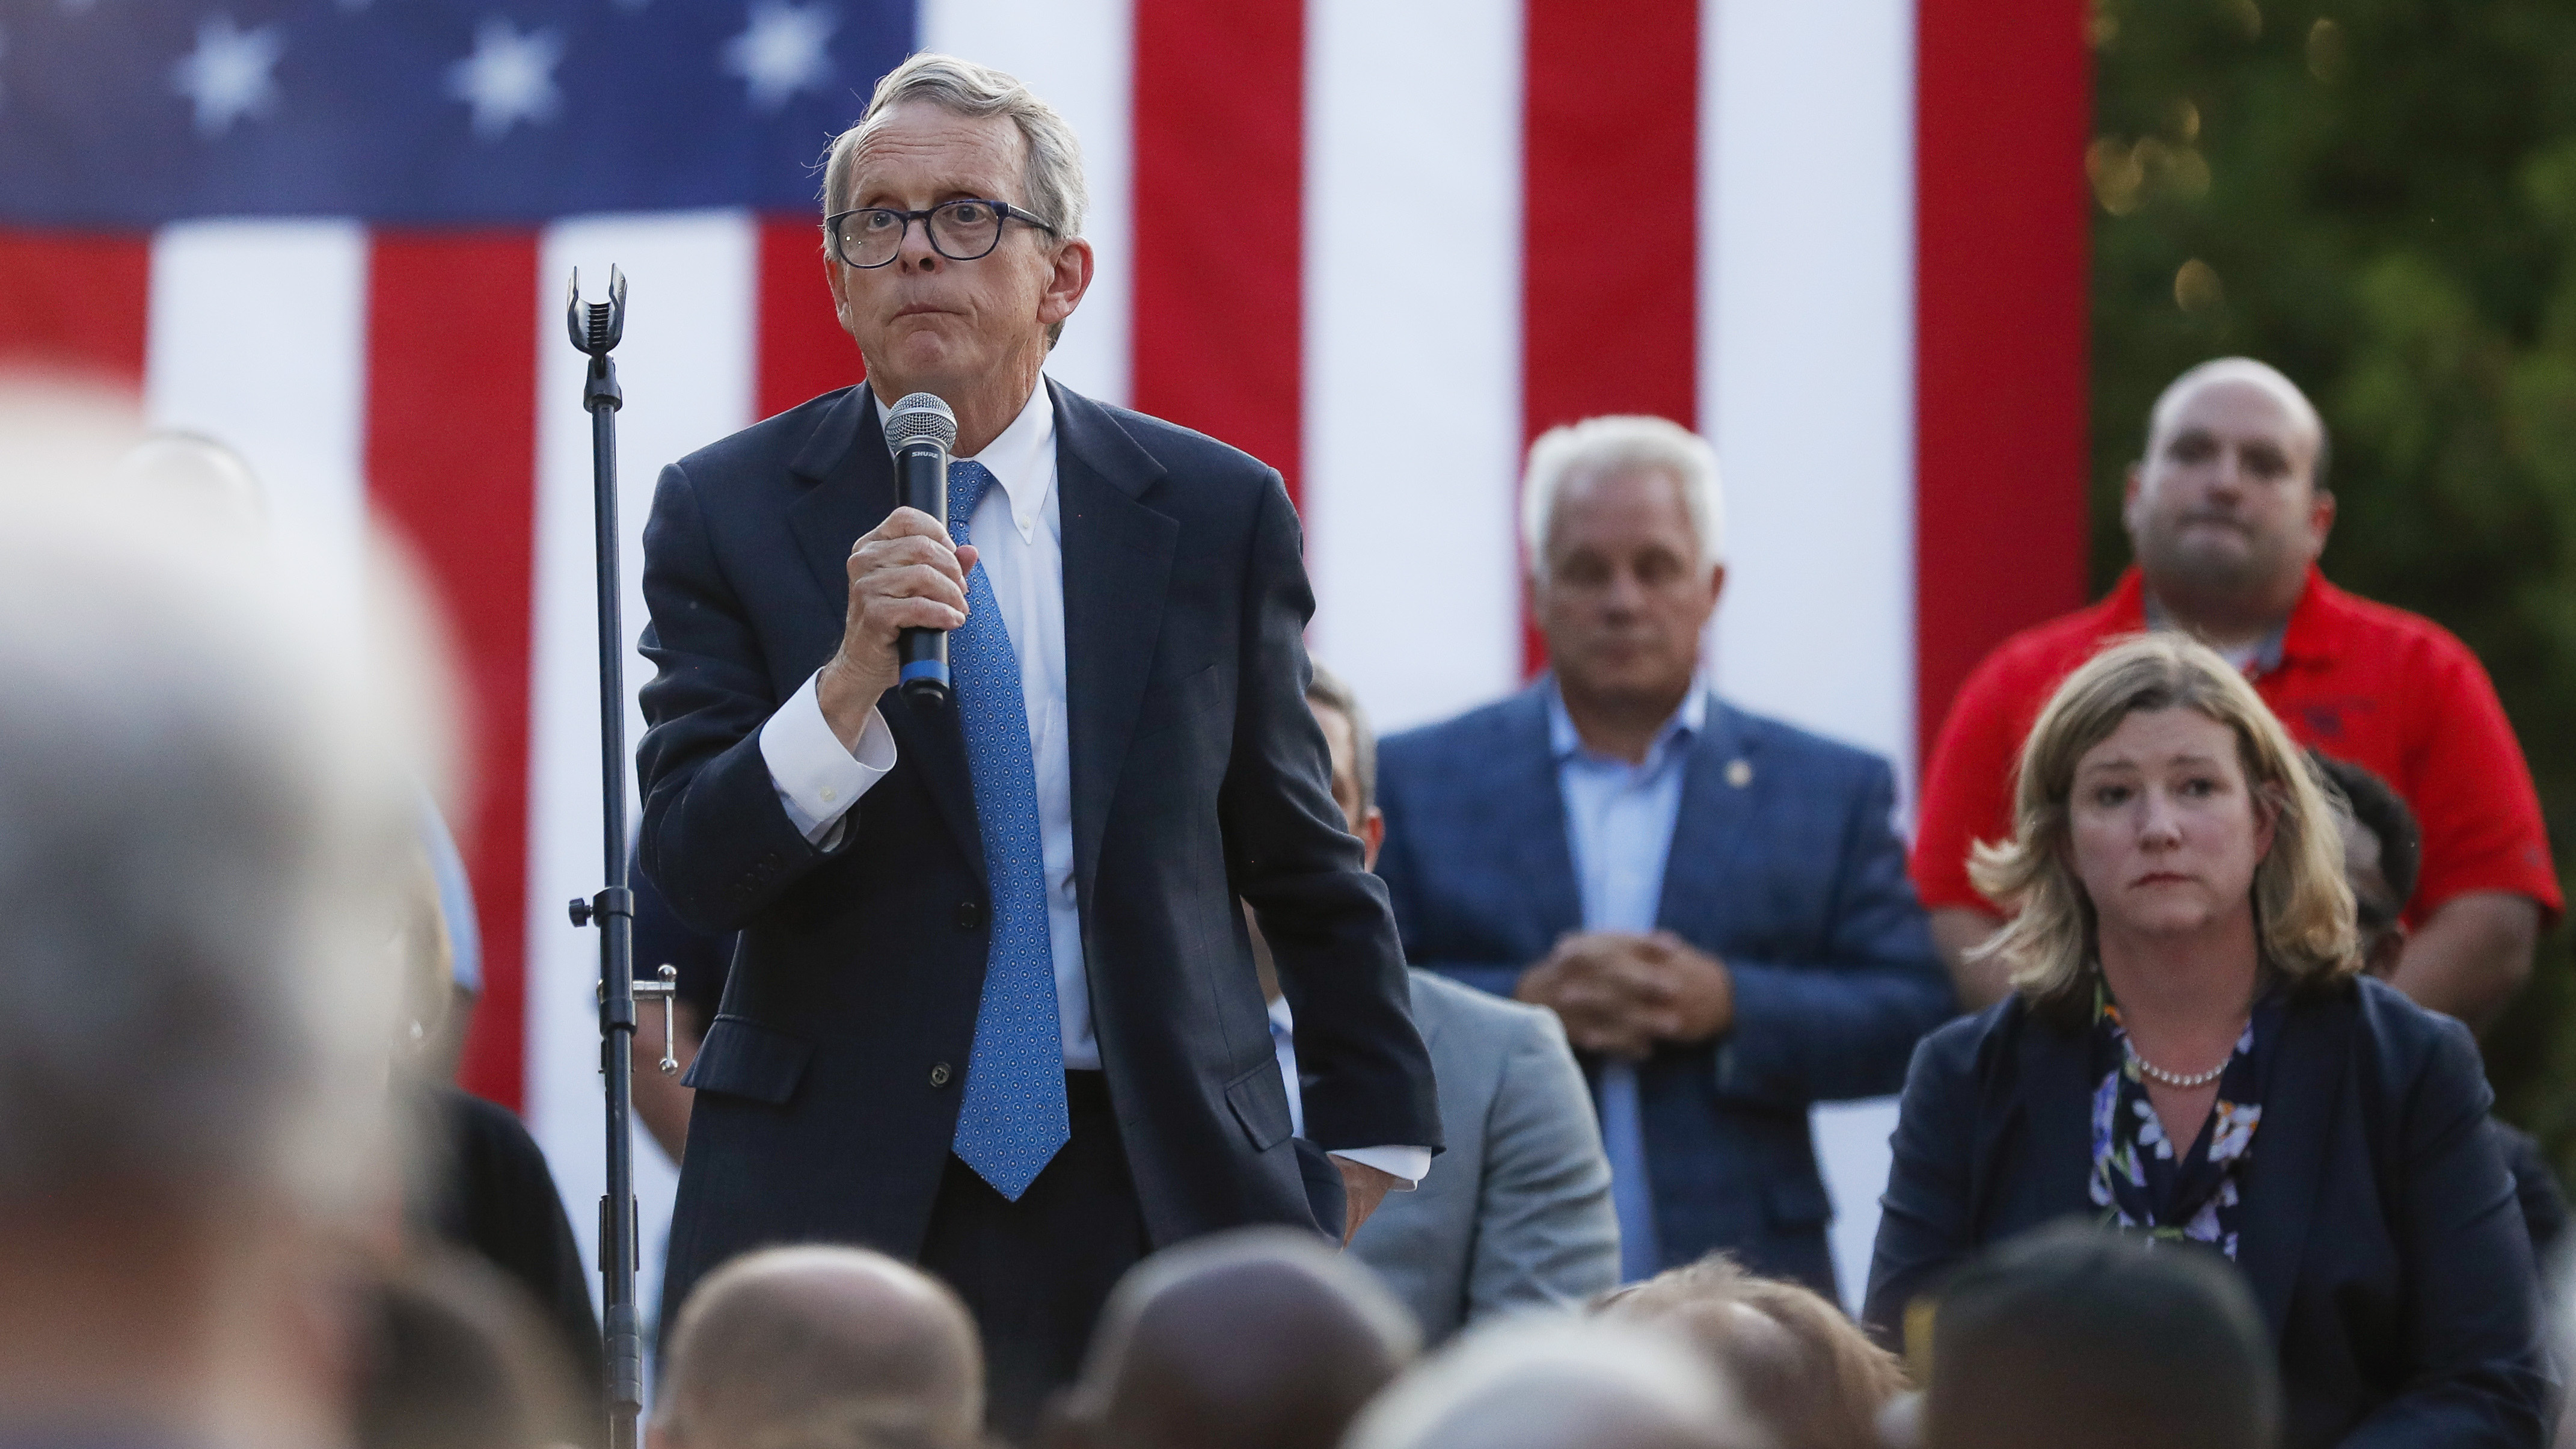 Ohio Governor Proposes New Gun Control Laws, Marking Shift From Past GOP Leadership